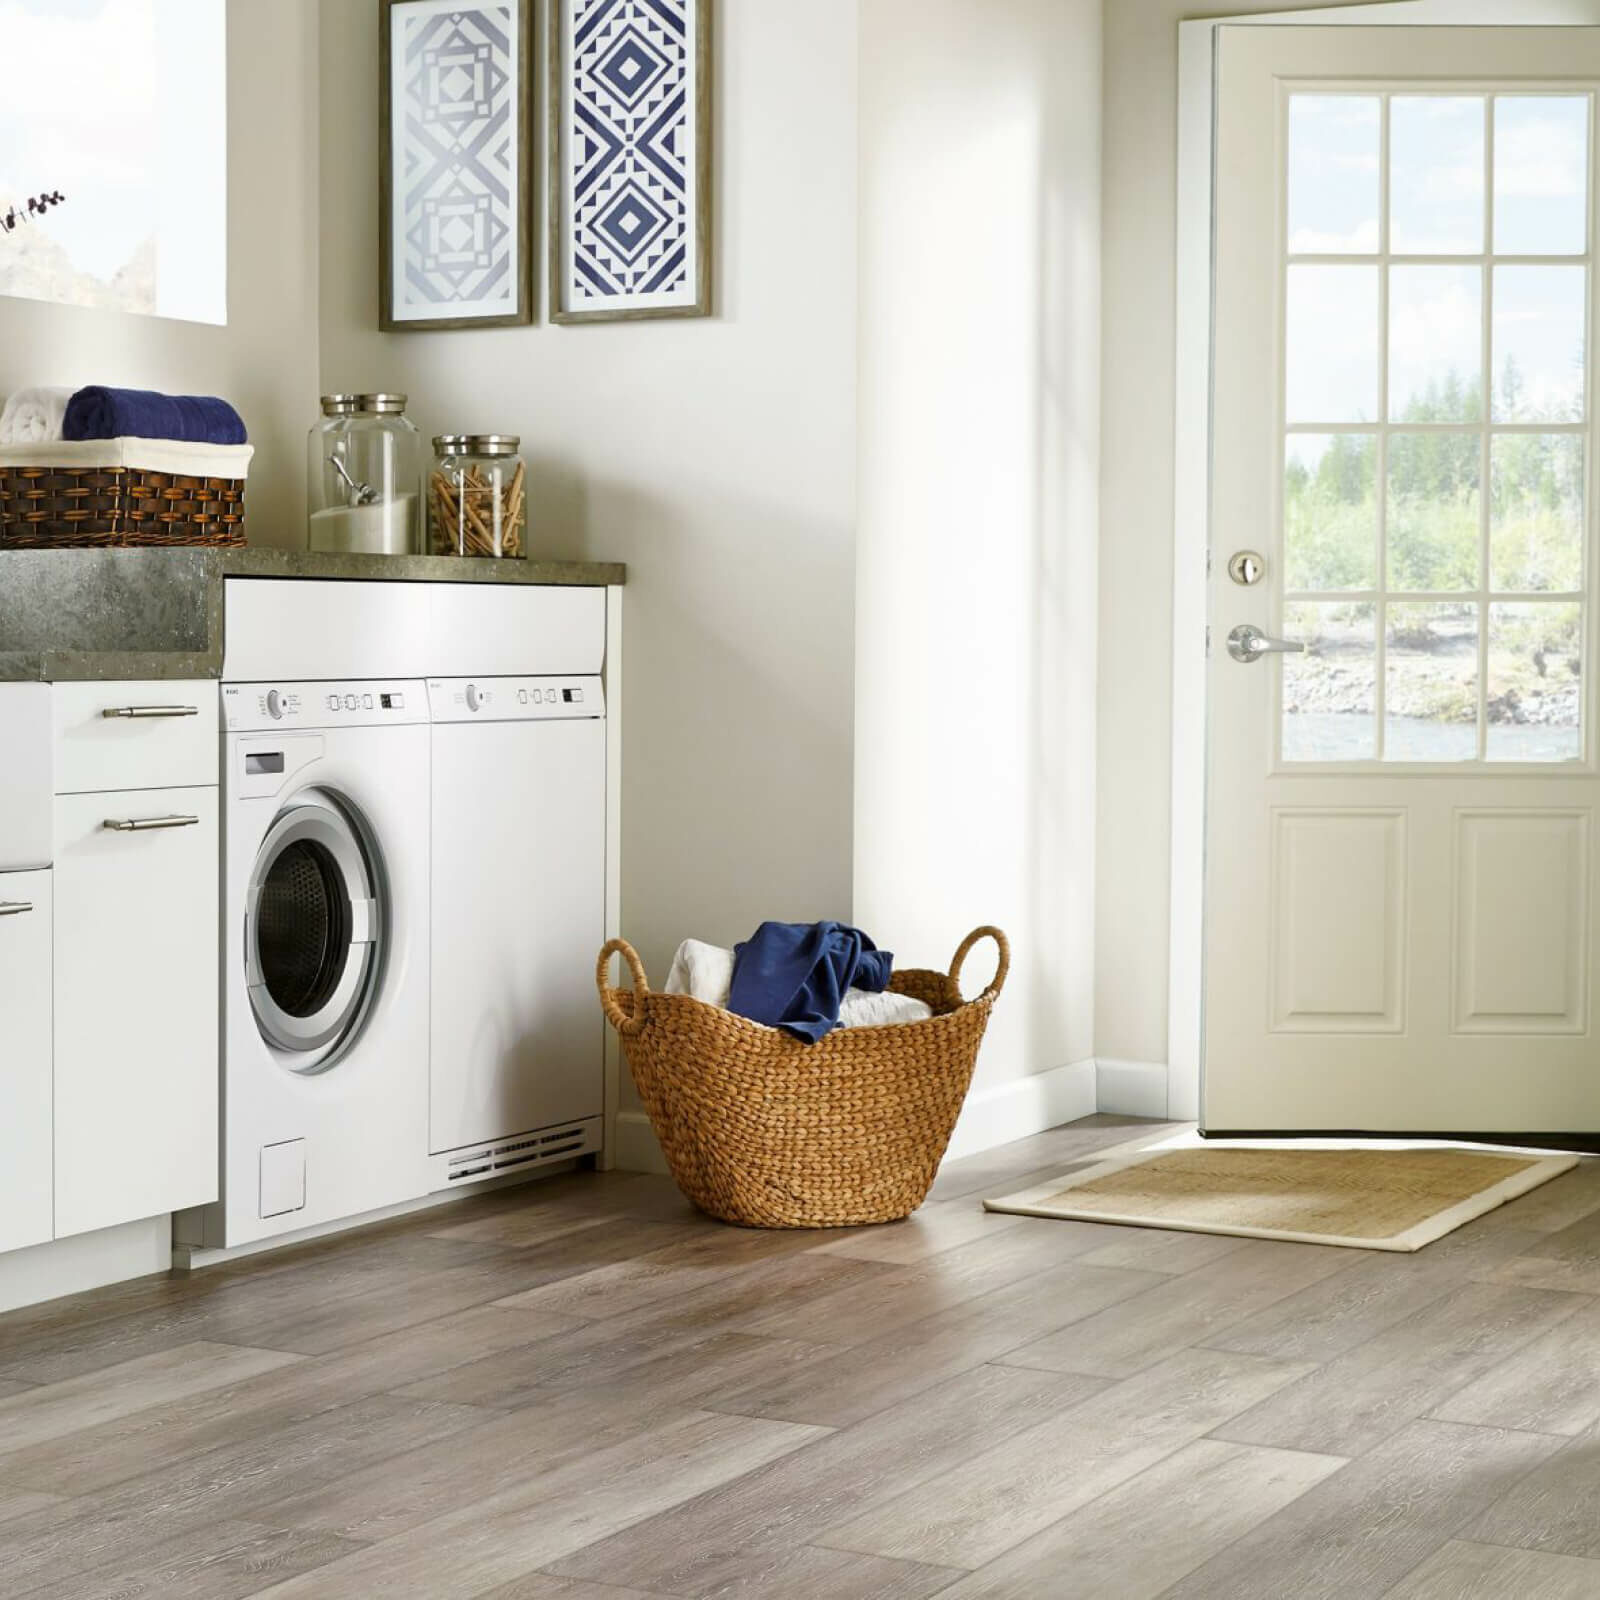 Tile in a laundry room   Flooring 101